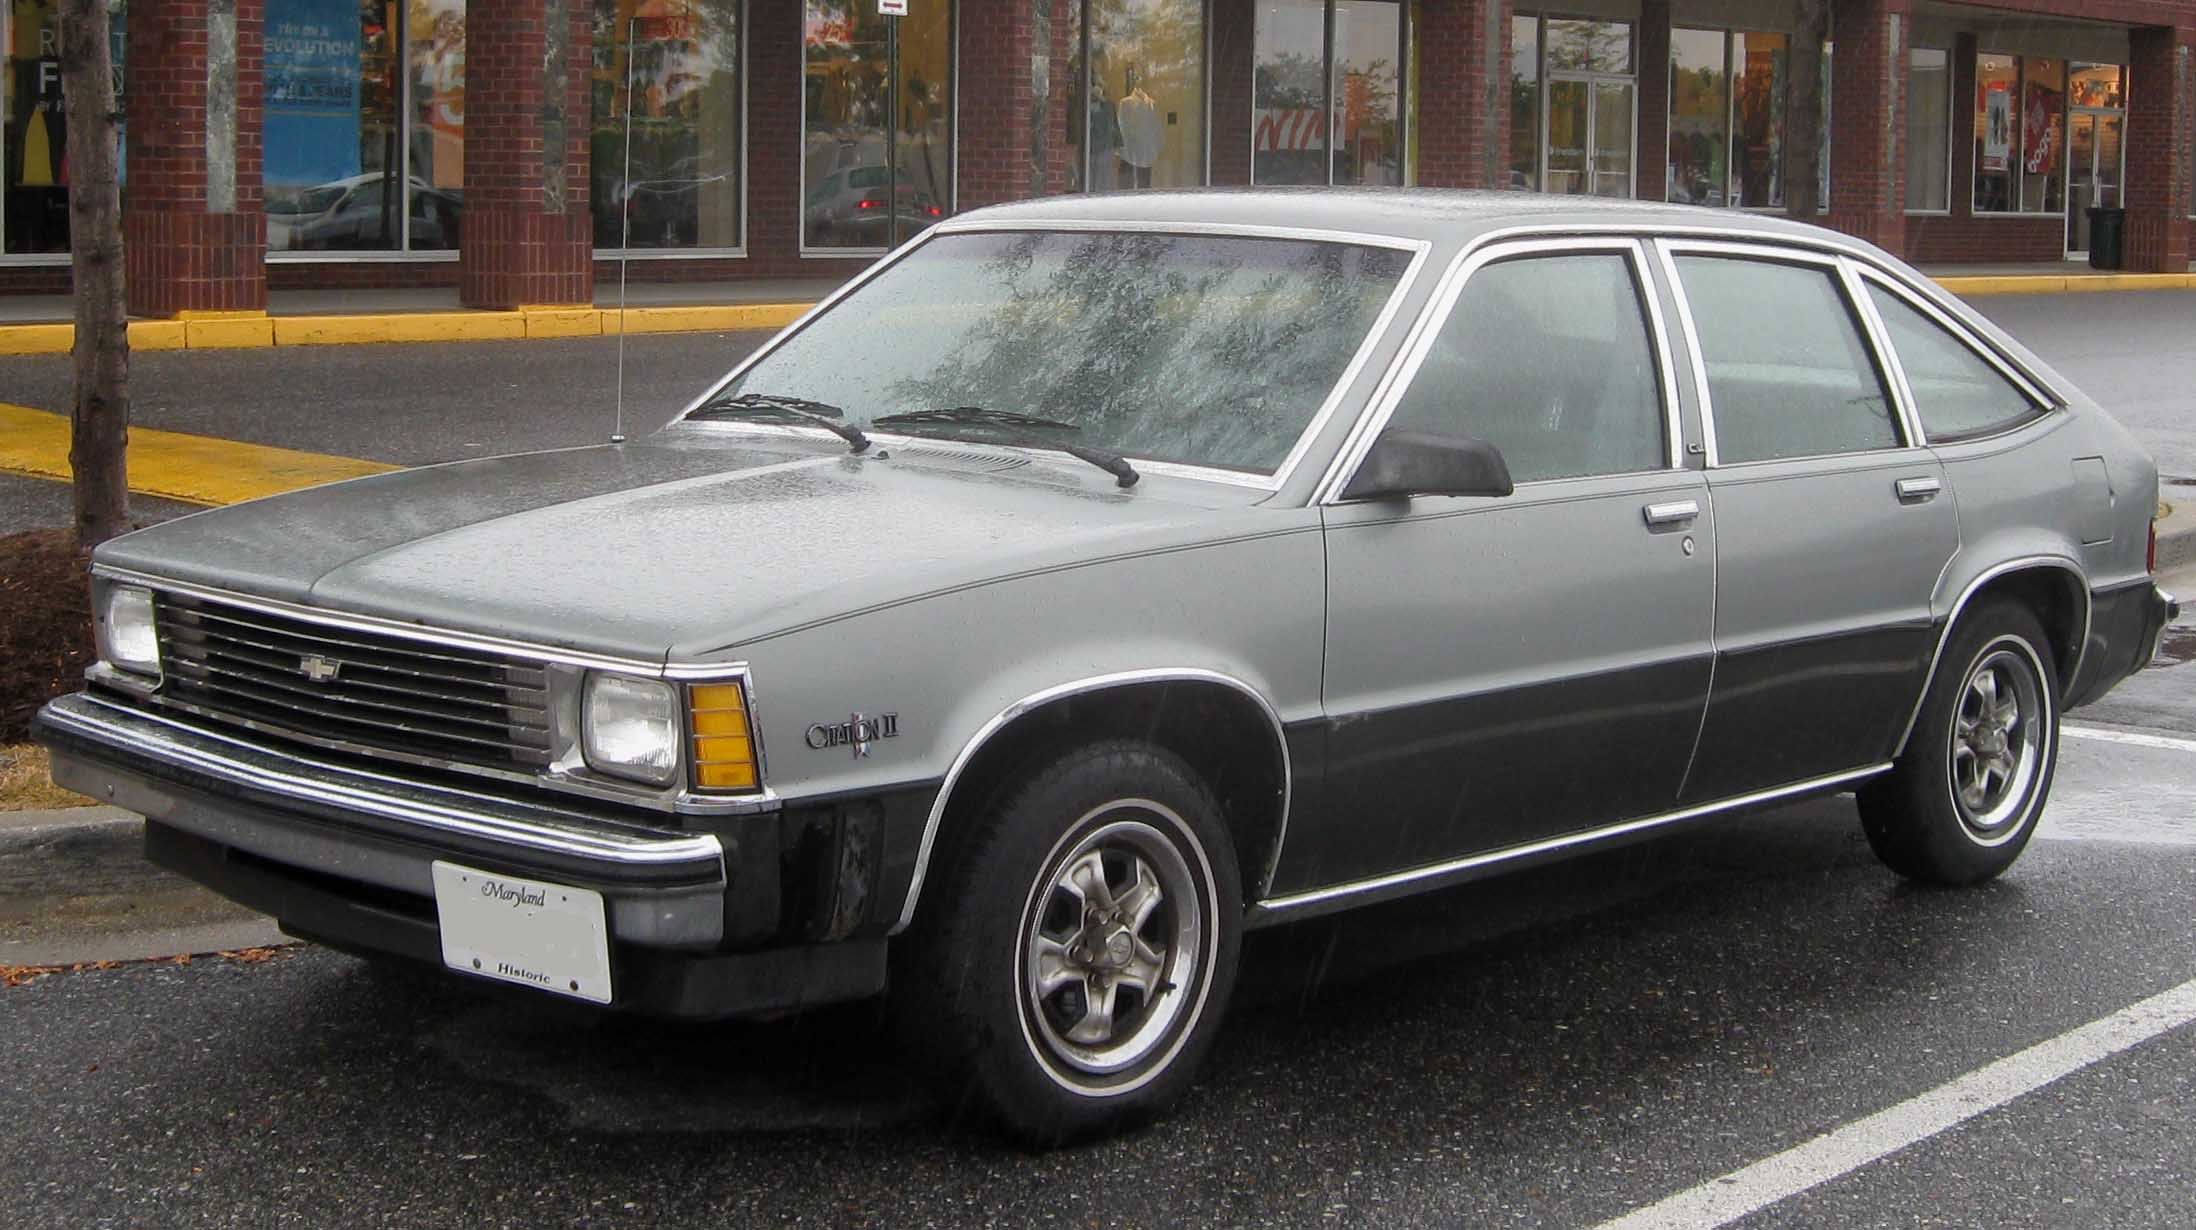 Chevrolet_Citation_II_front.jpg